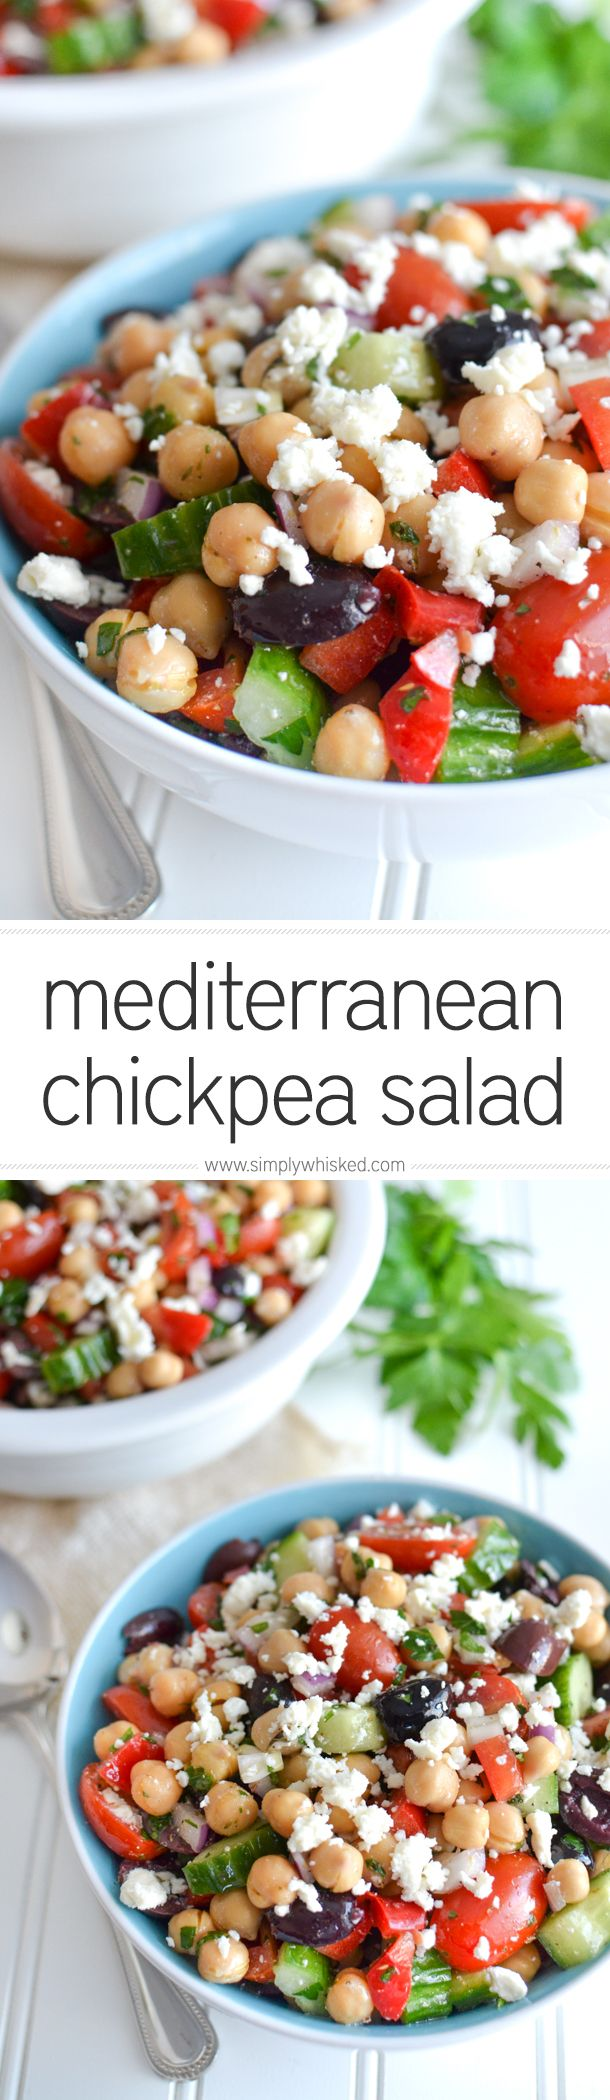 Mediterranean Chickpea Salad | simplywhisked.com(Paleo Soup Weightloss)